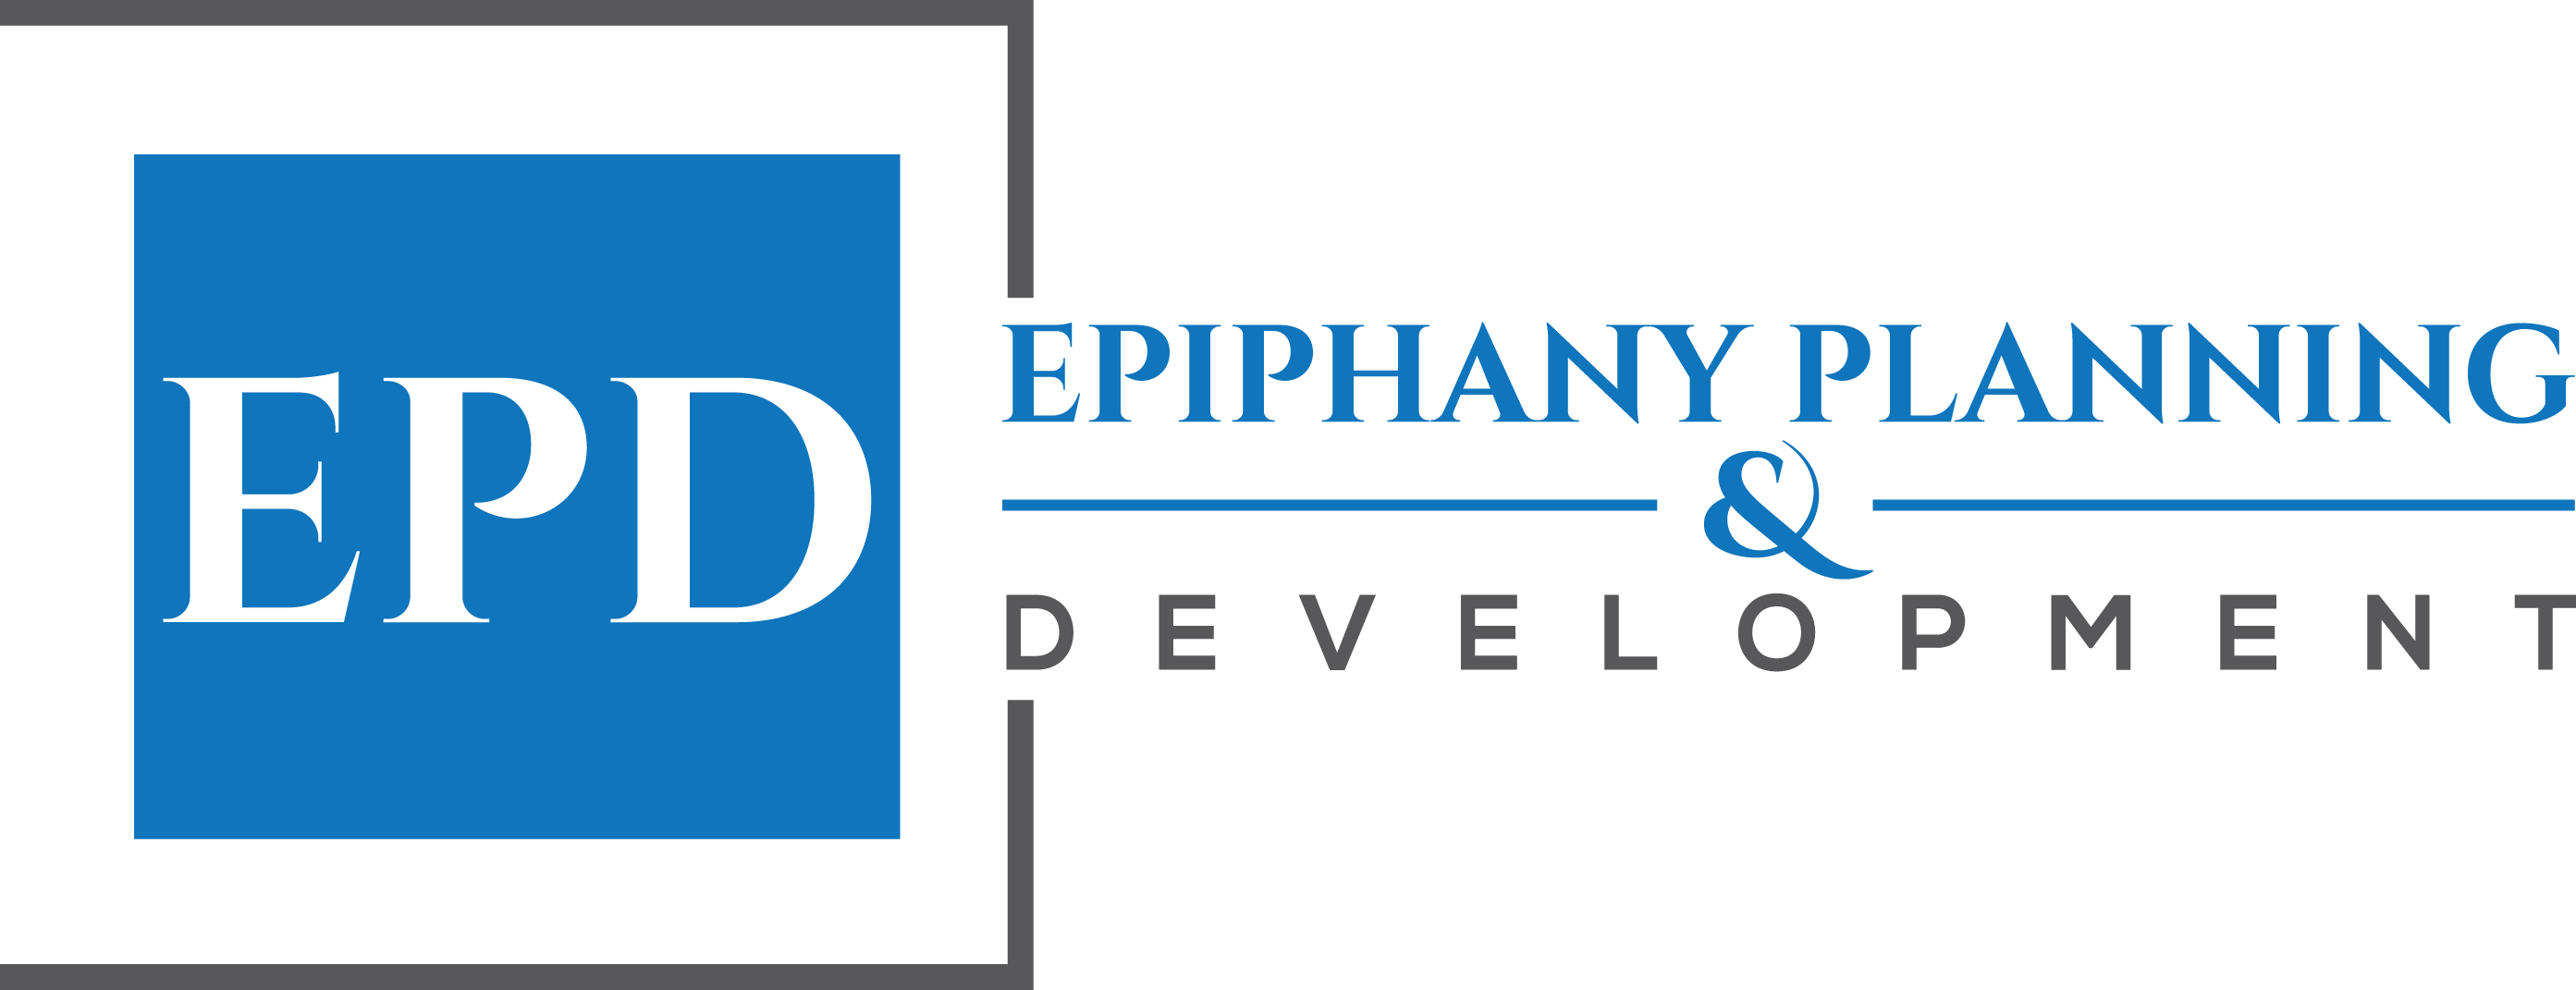 Epiphany Planning & Development